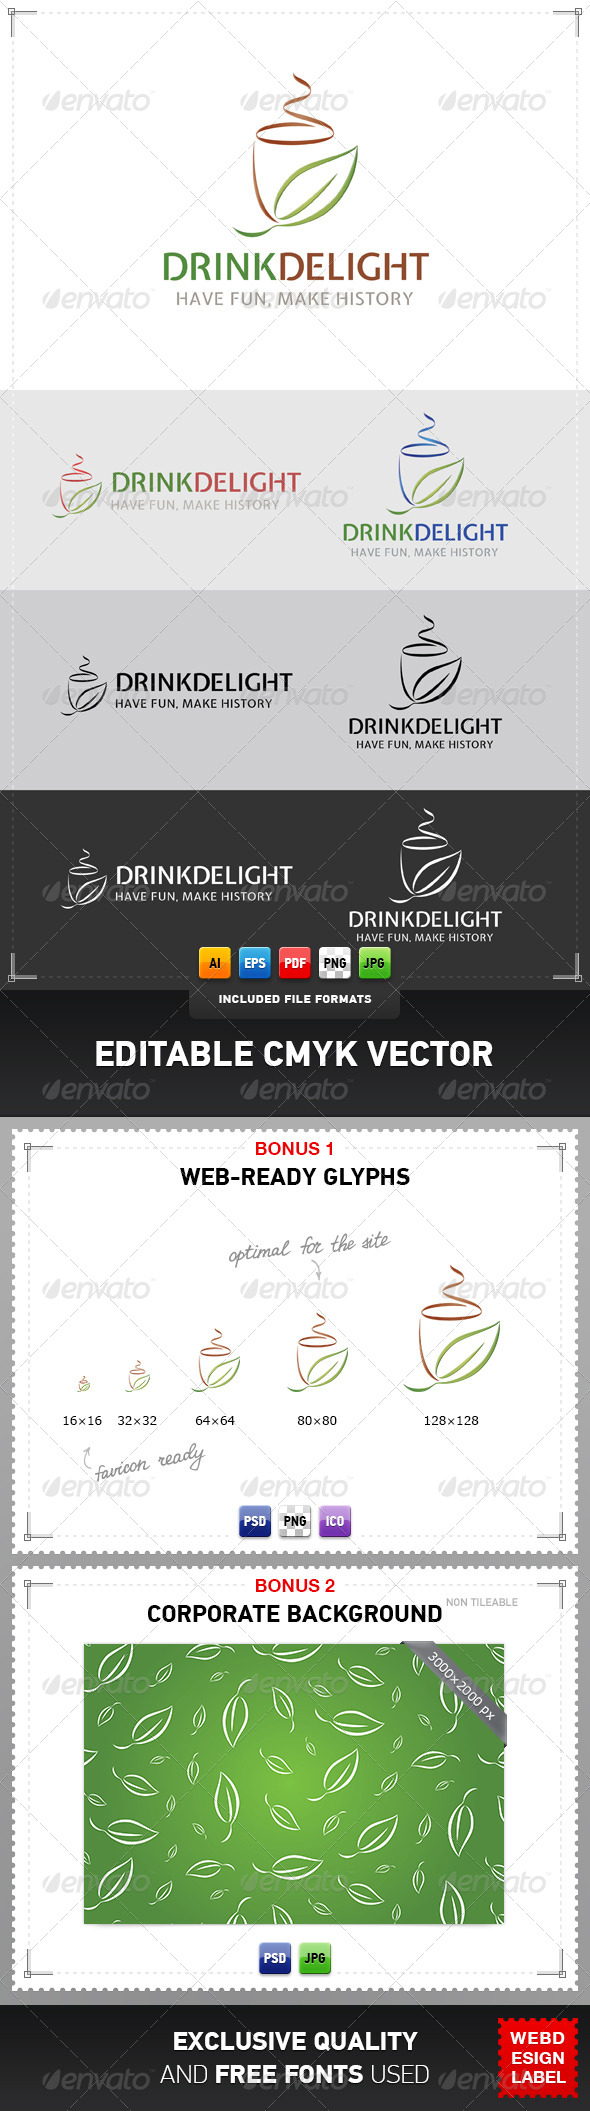 GraphicRiver Drink Delight Logo 4988199